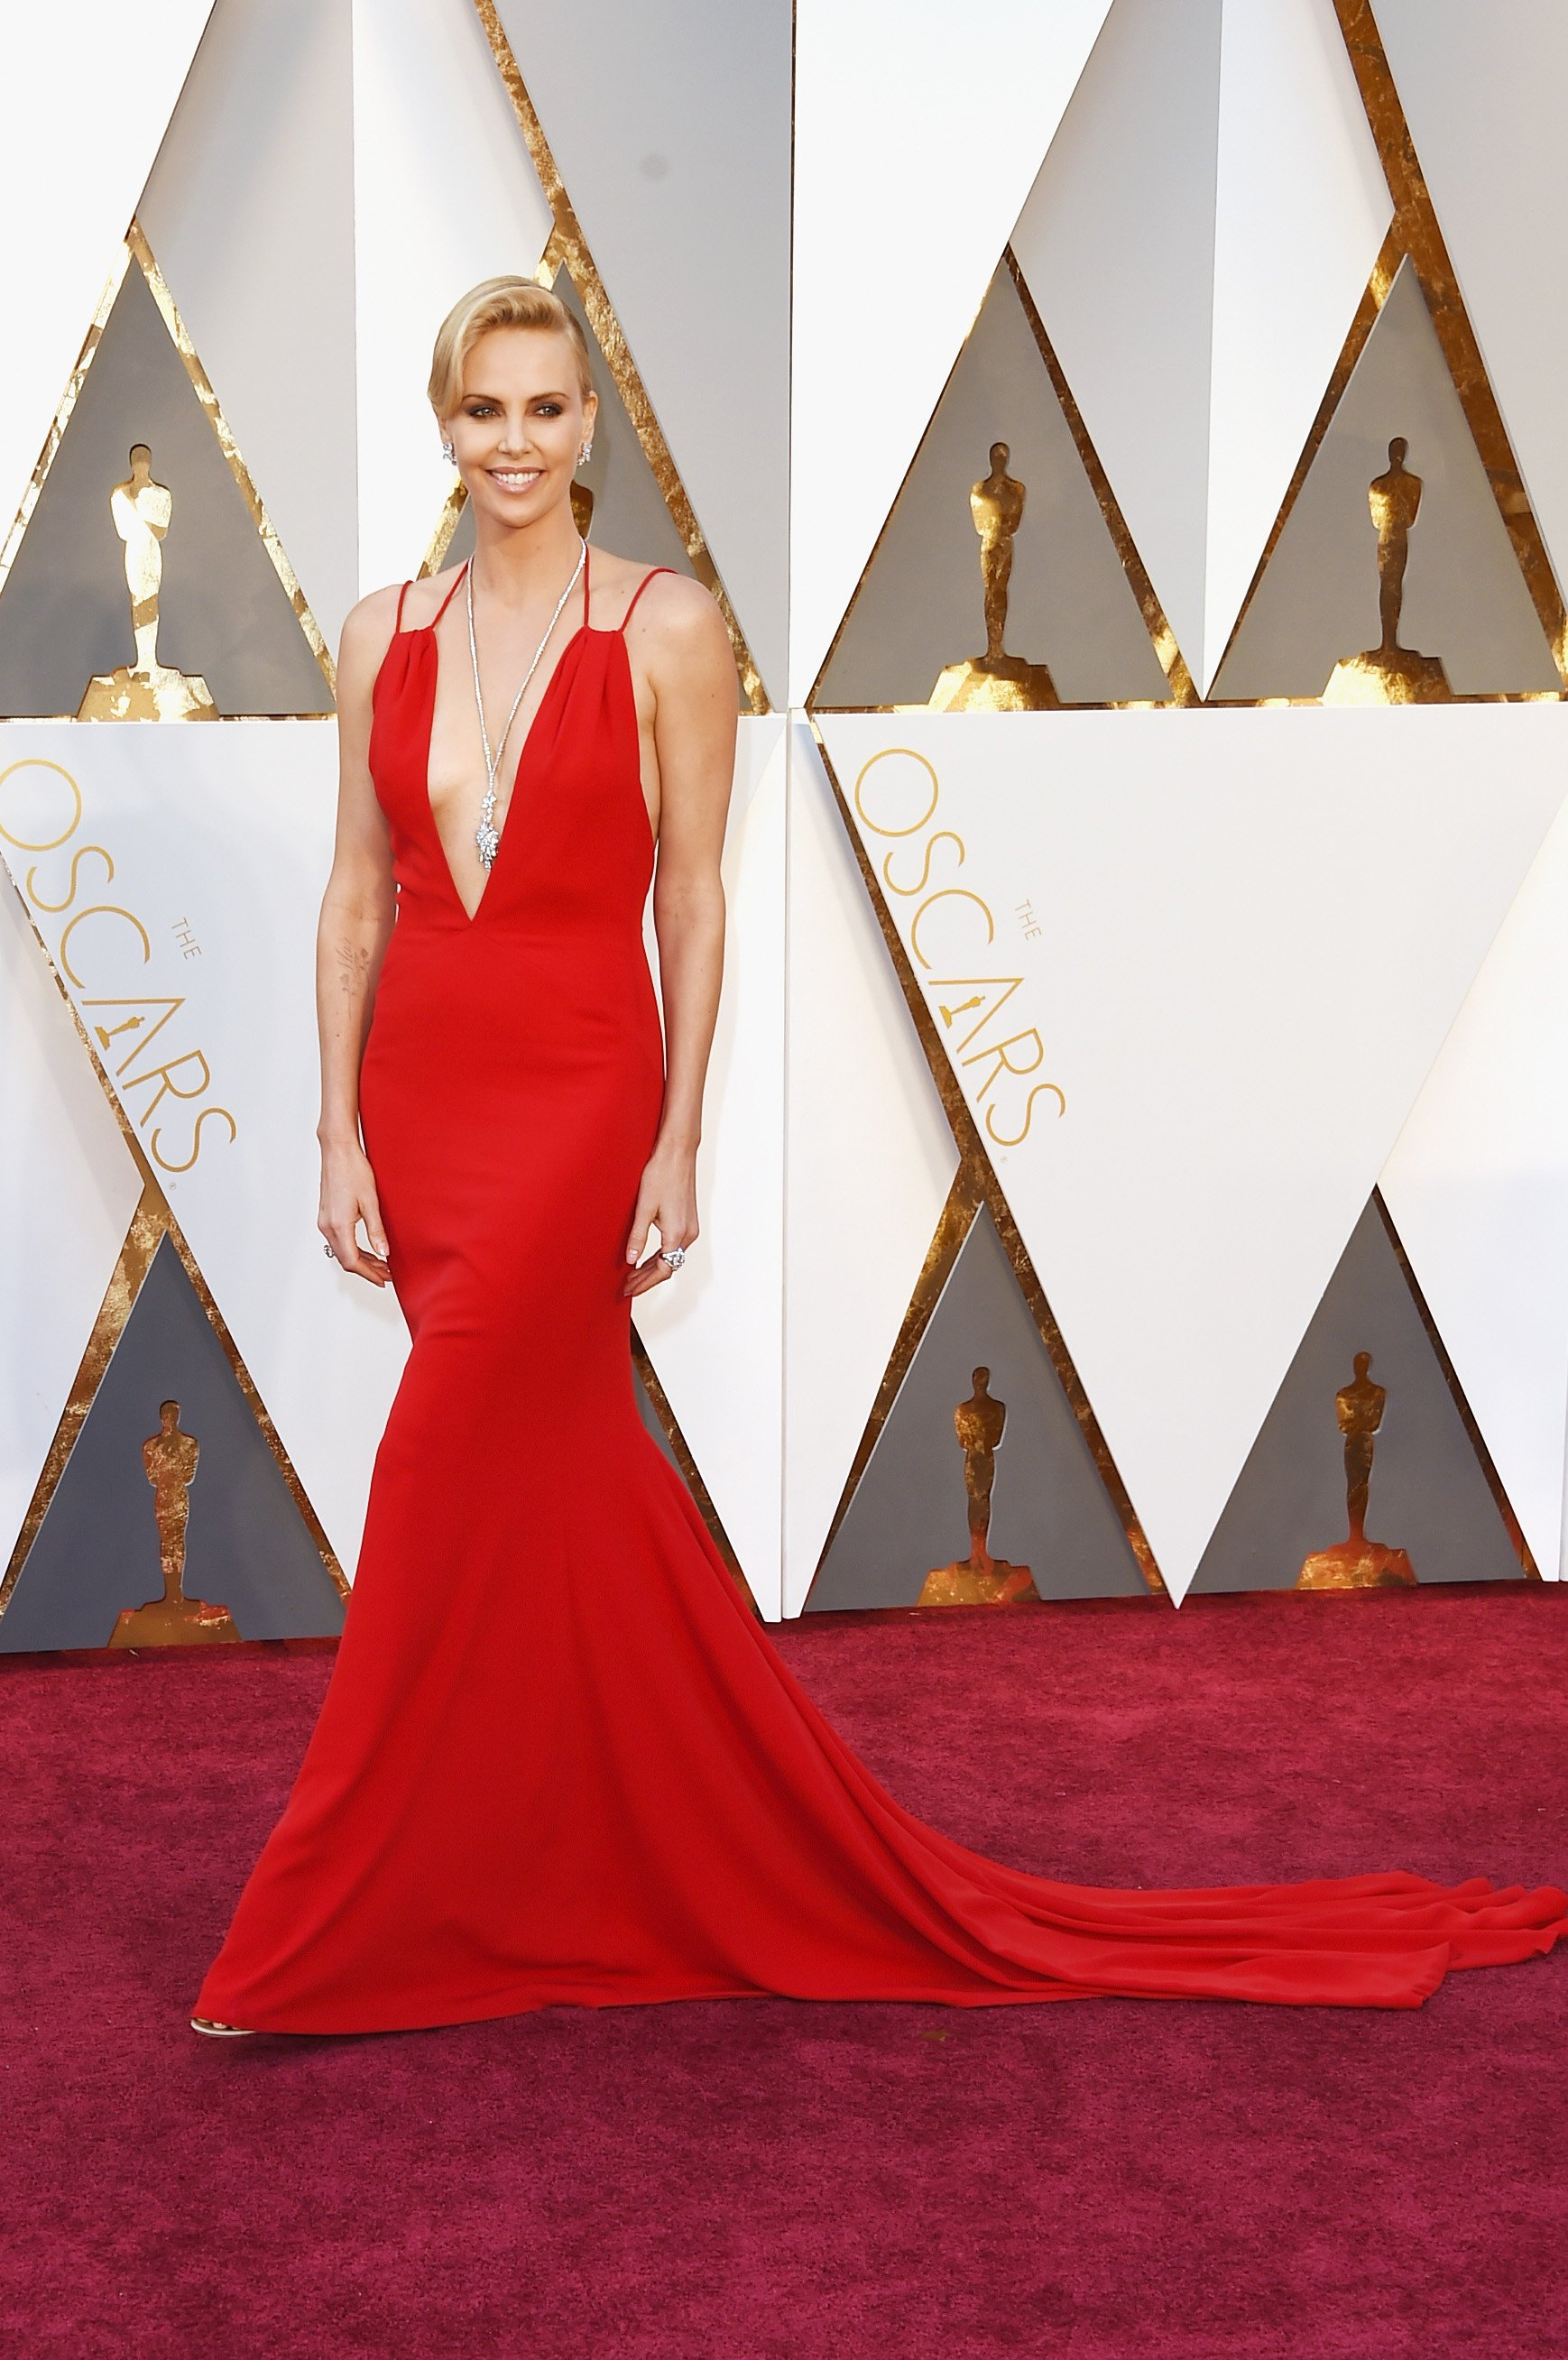 charlize theron and the oscars recap with ego